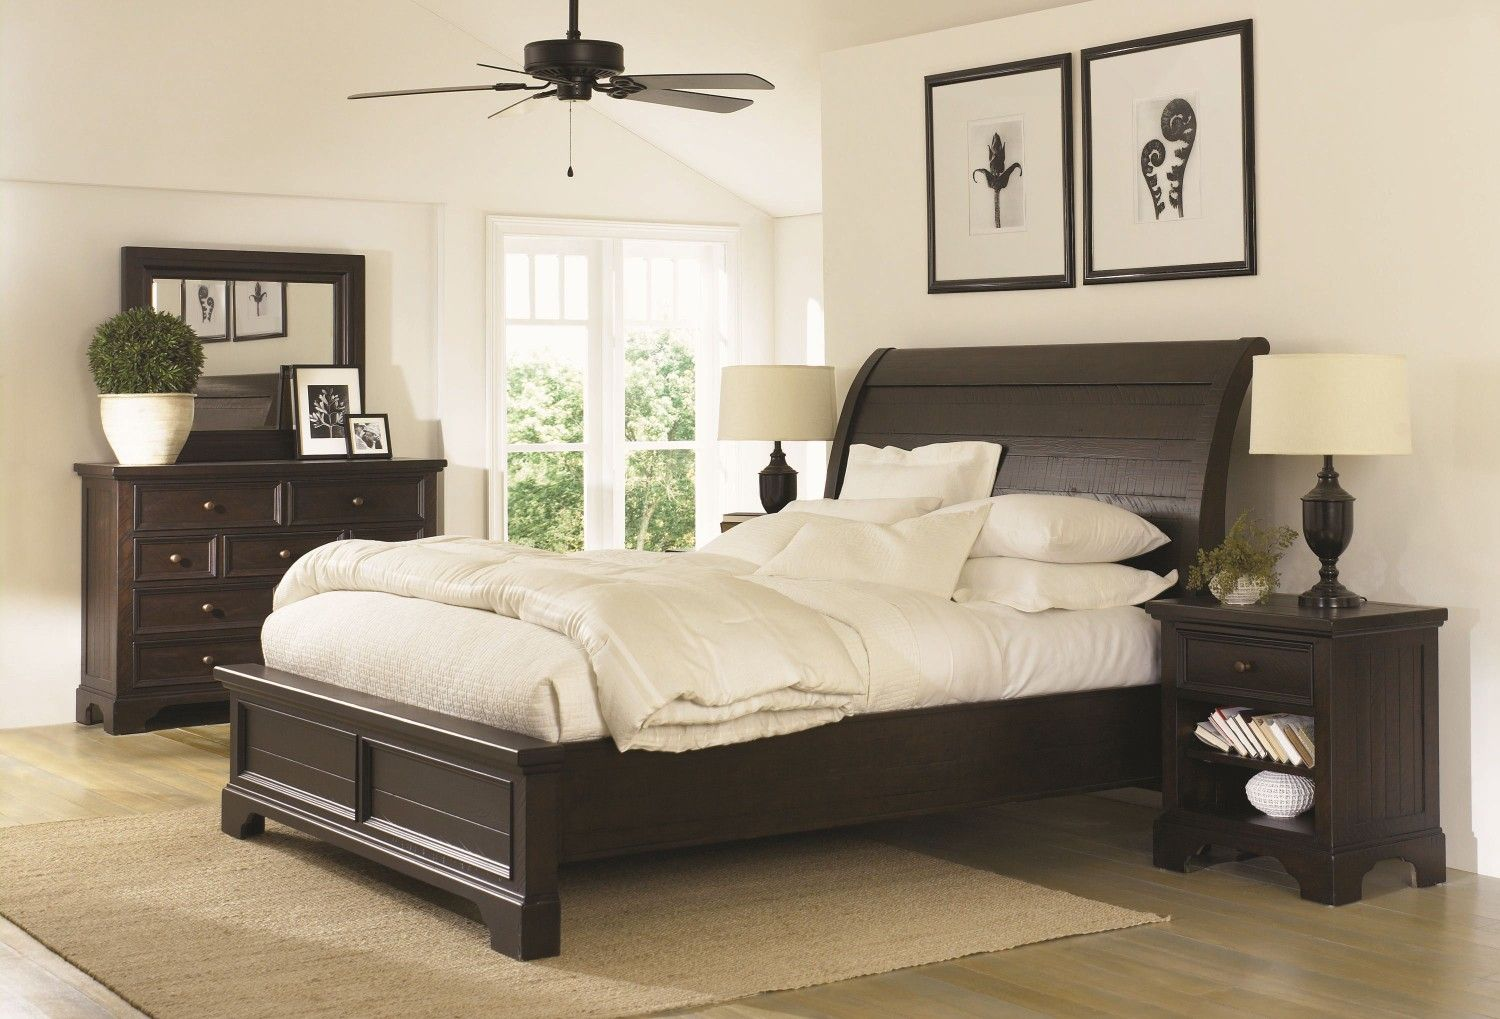 Pin By Stasi Richard On Home Bedroom Furniture Sets Master Bedrooms Decor Mahogany Bedroom